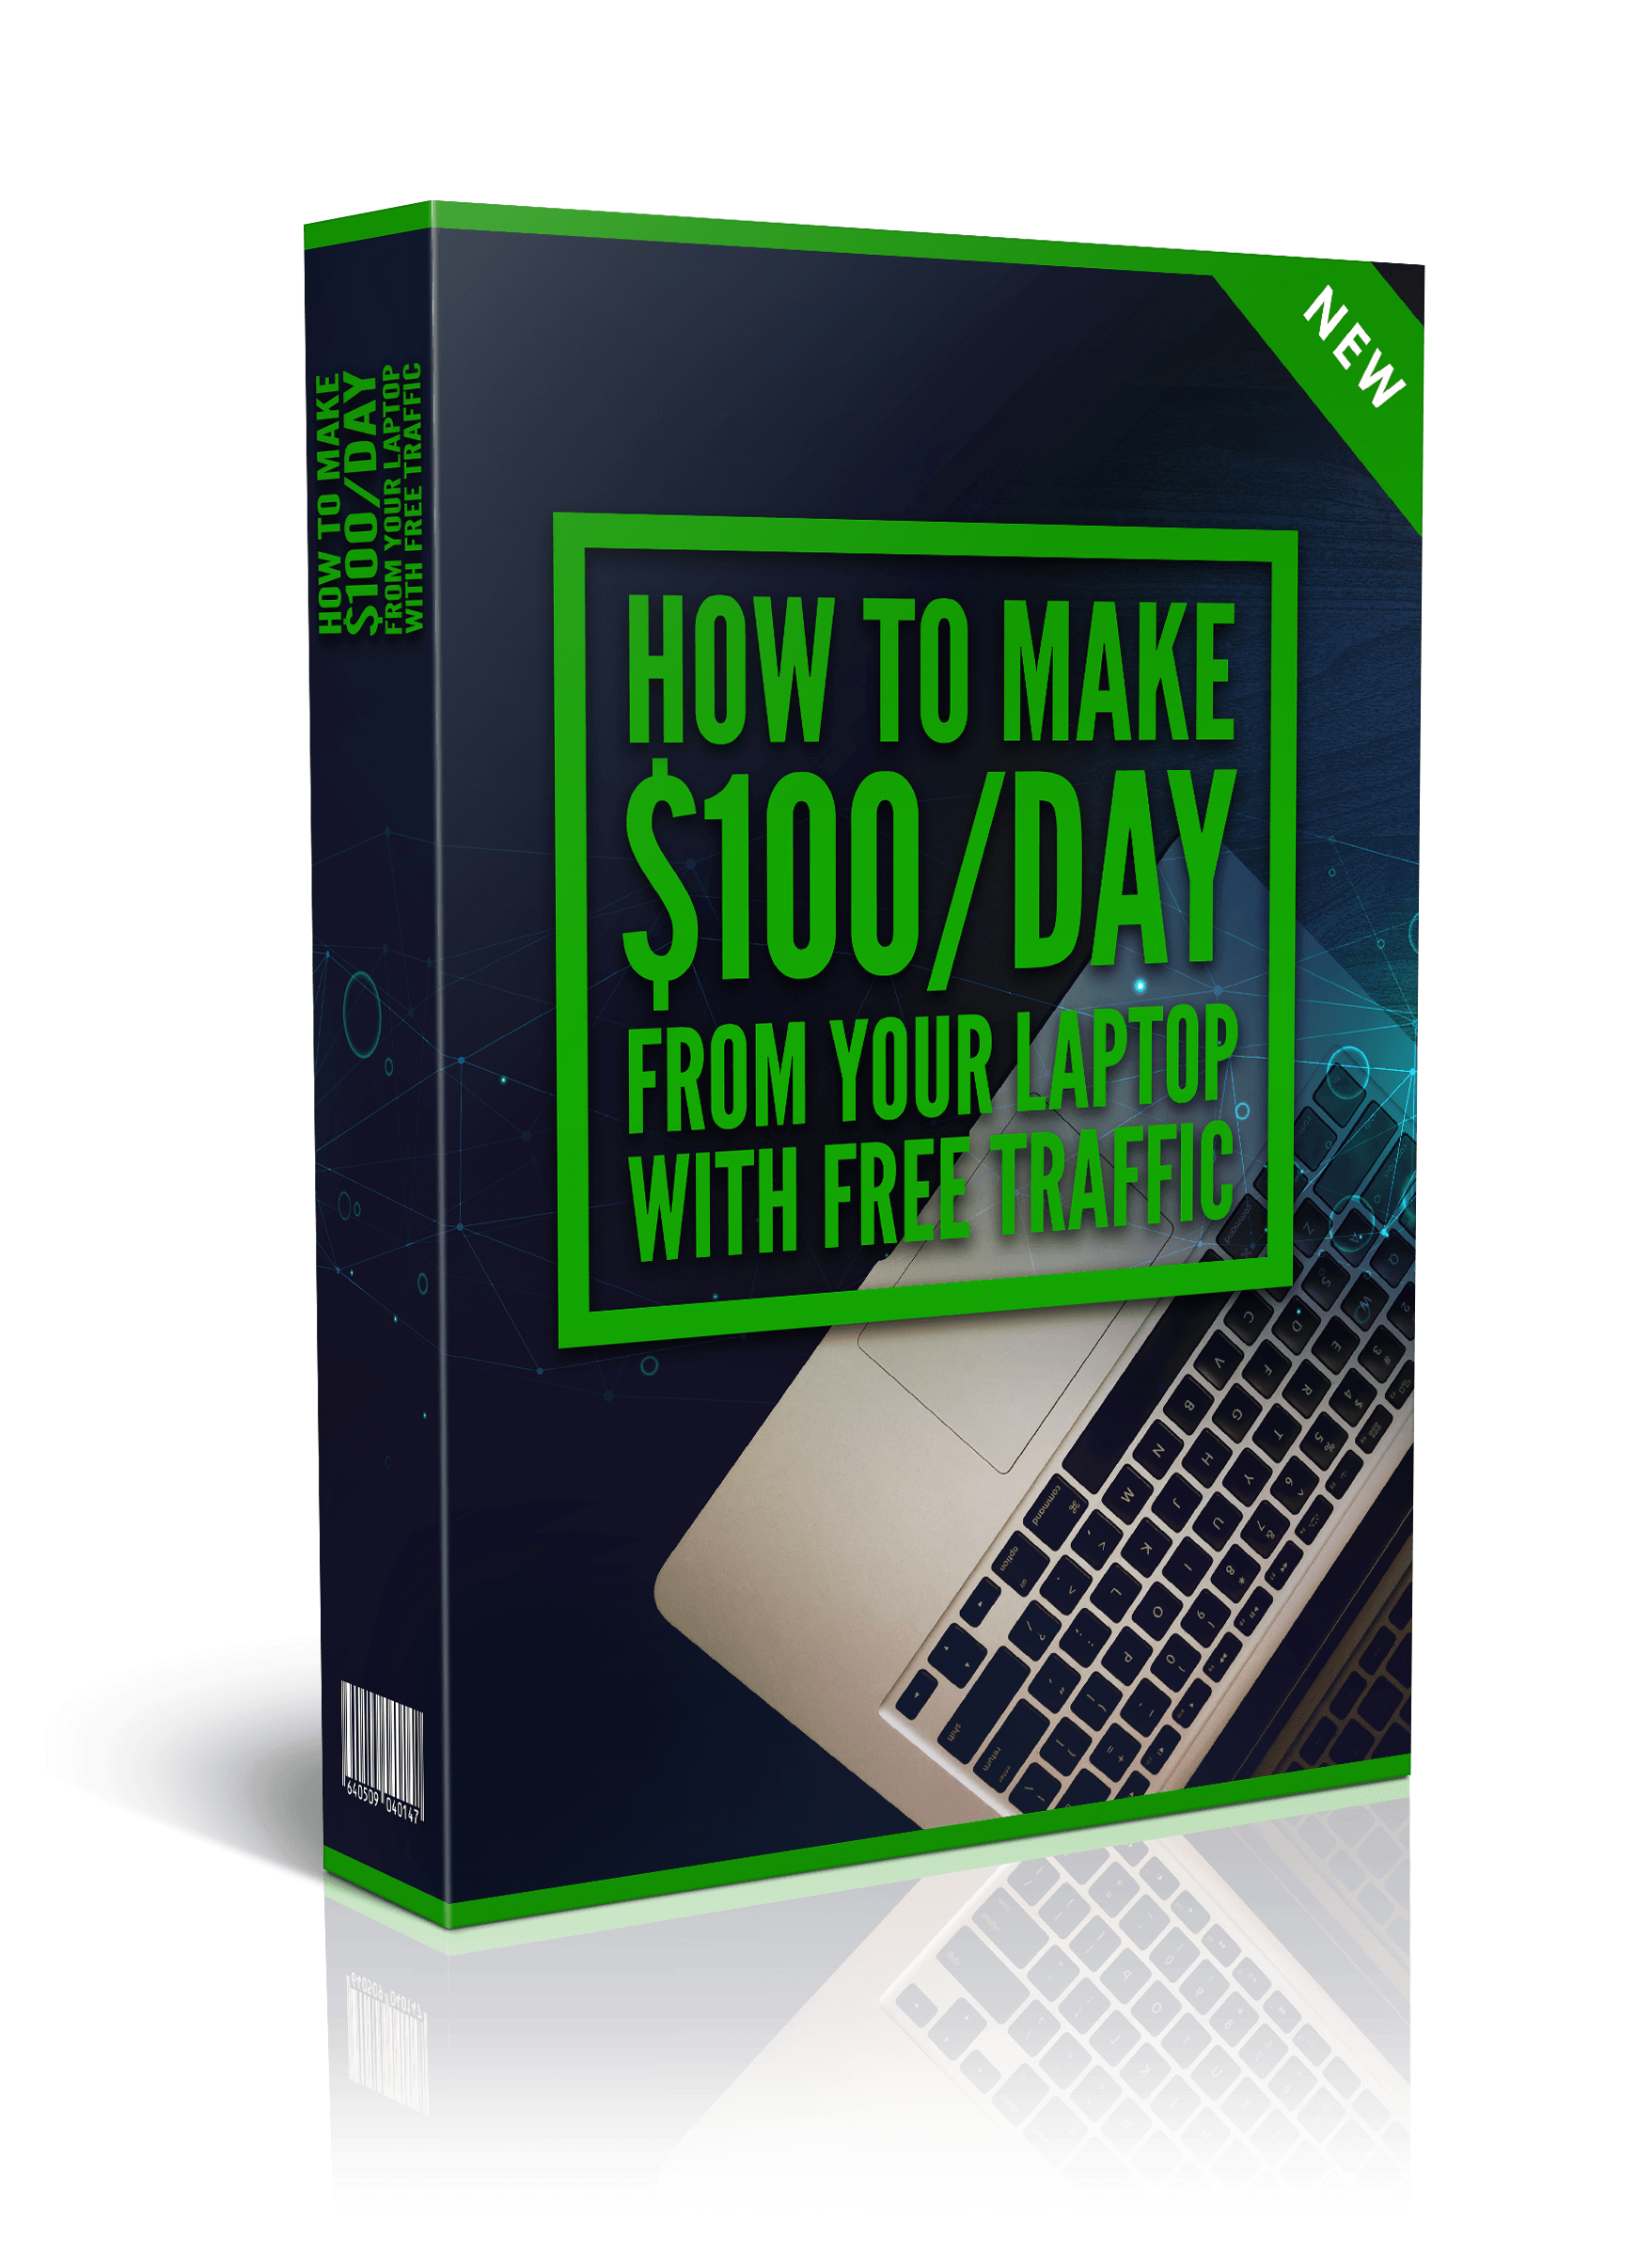 24. How-To-Make-_100Day-From-Your-Laptop-With-FREE-Traffic_boxcover